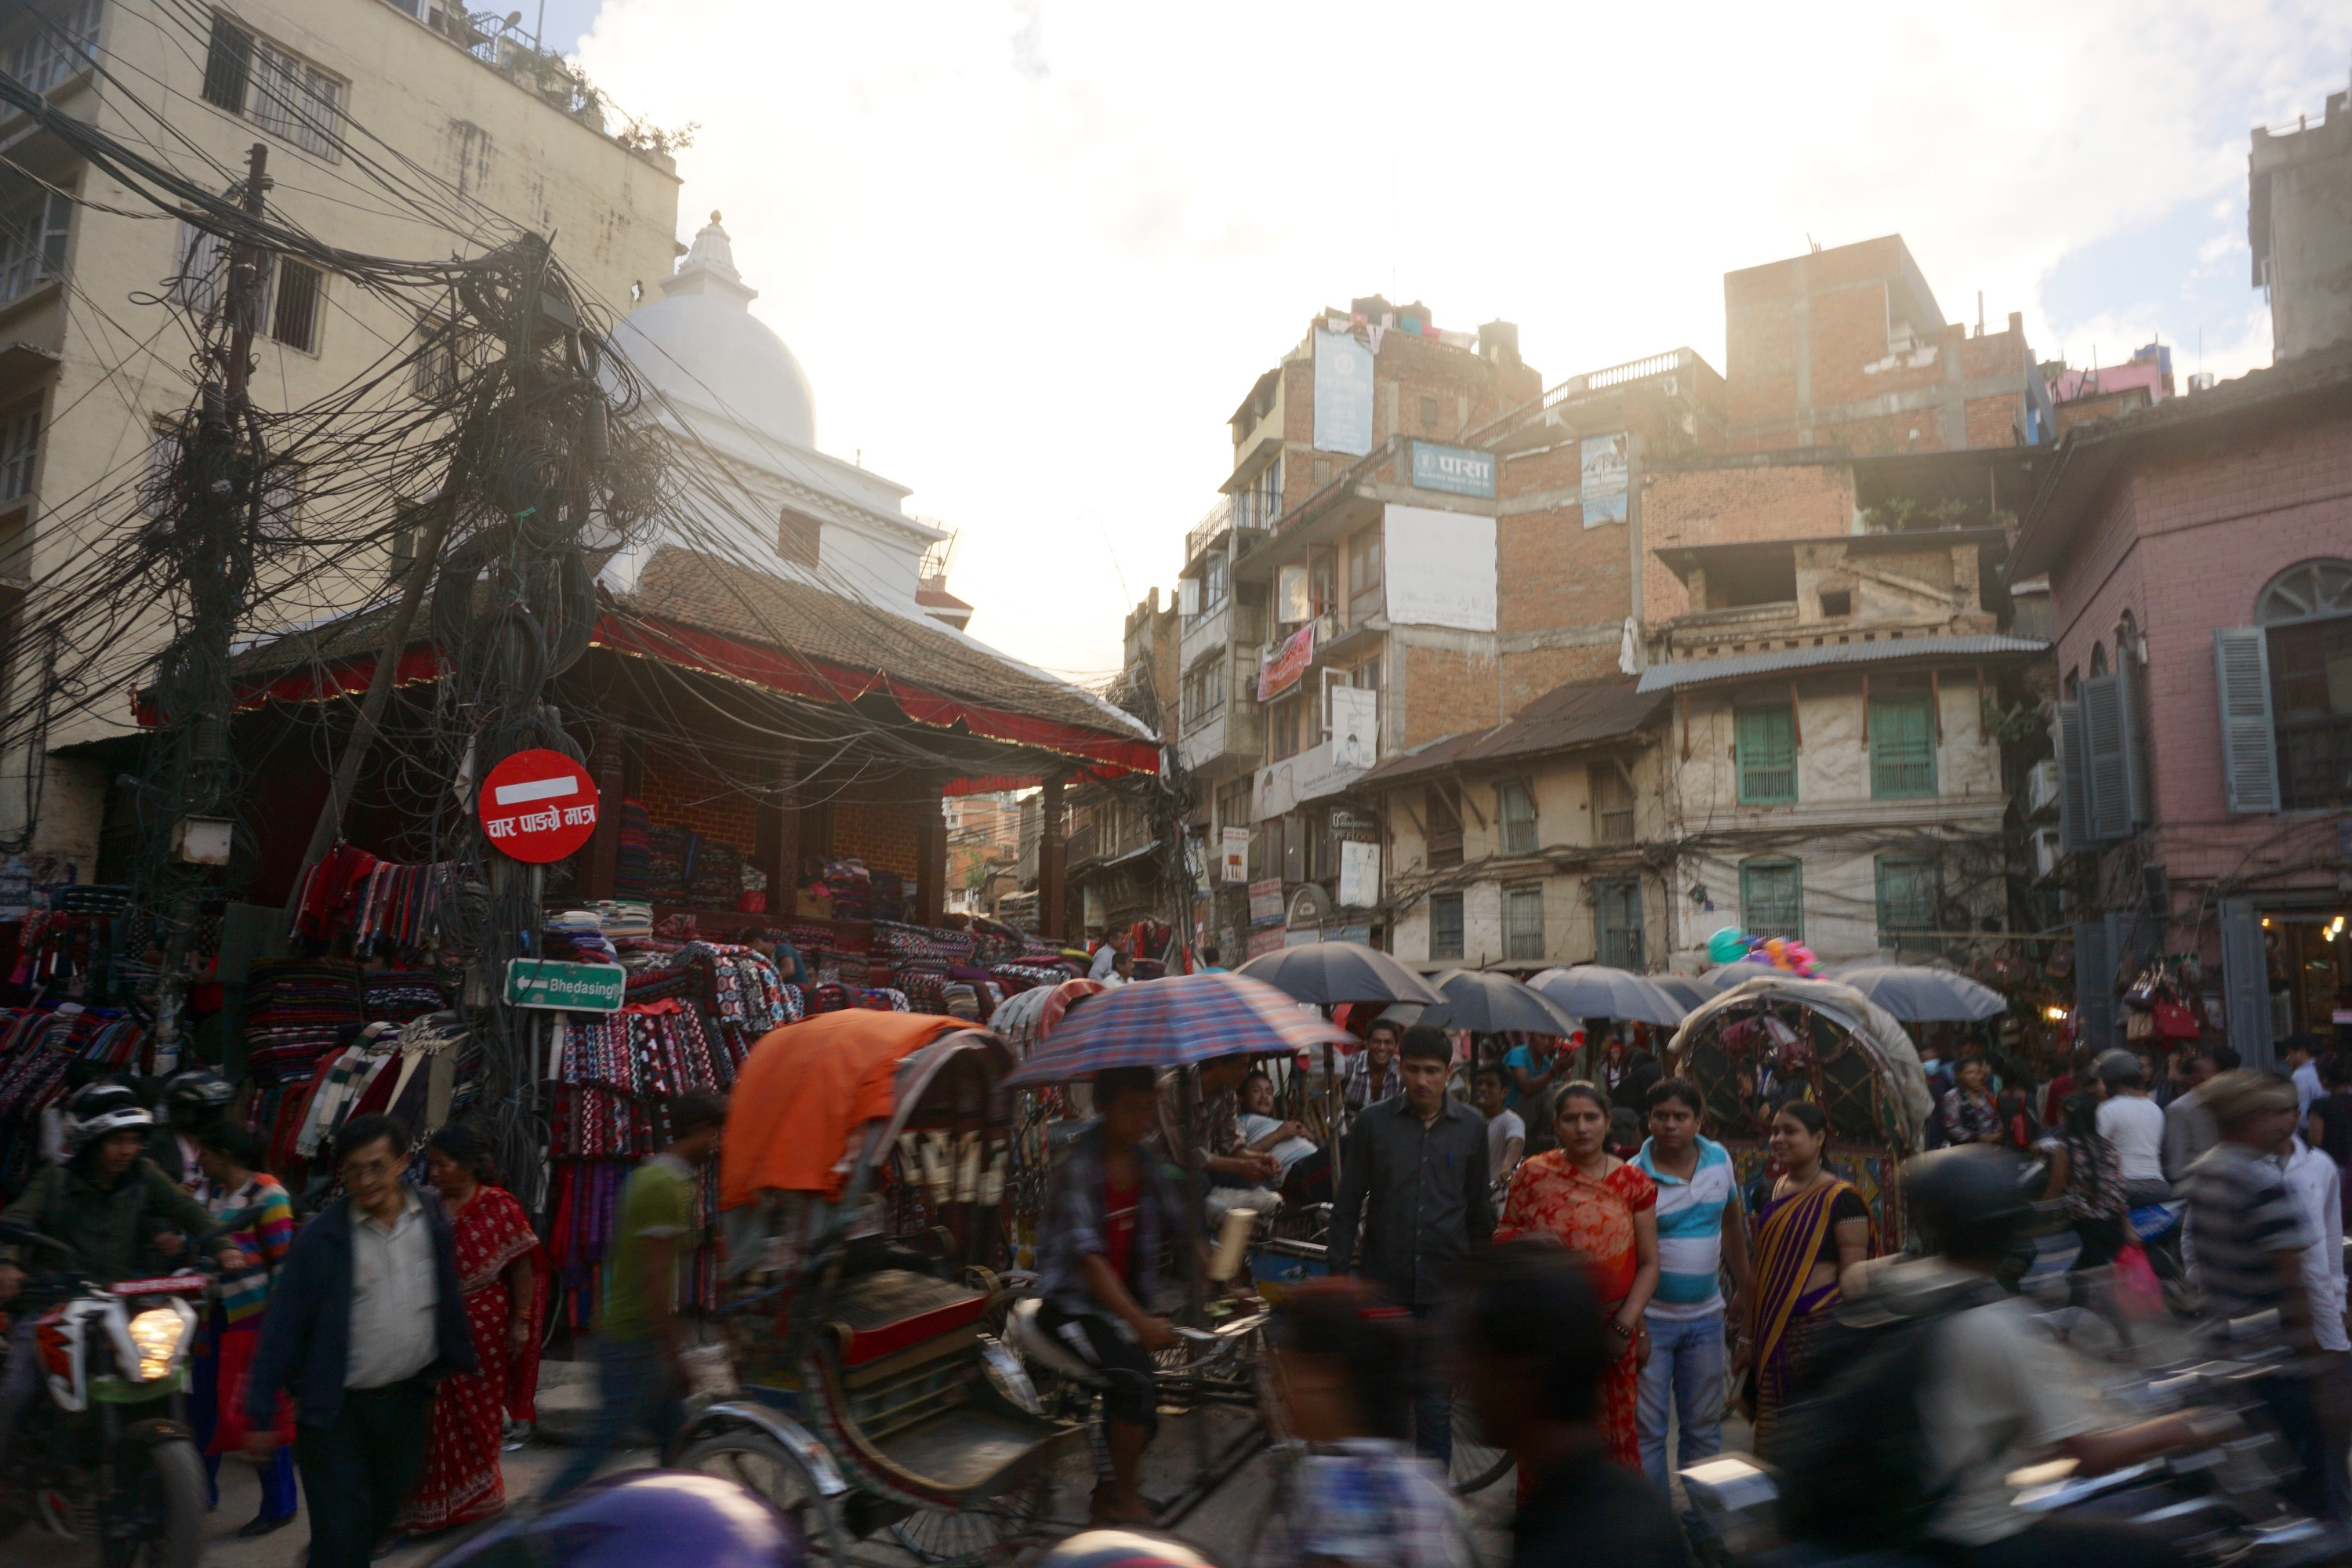 the action packed Durbar Square